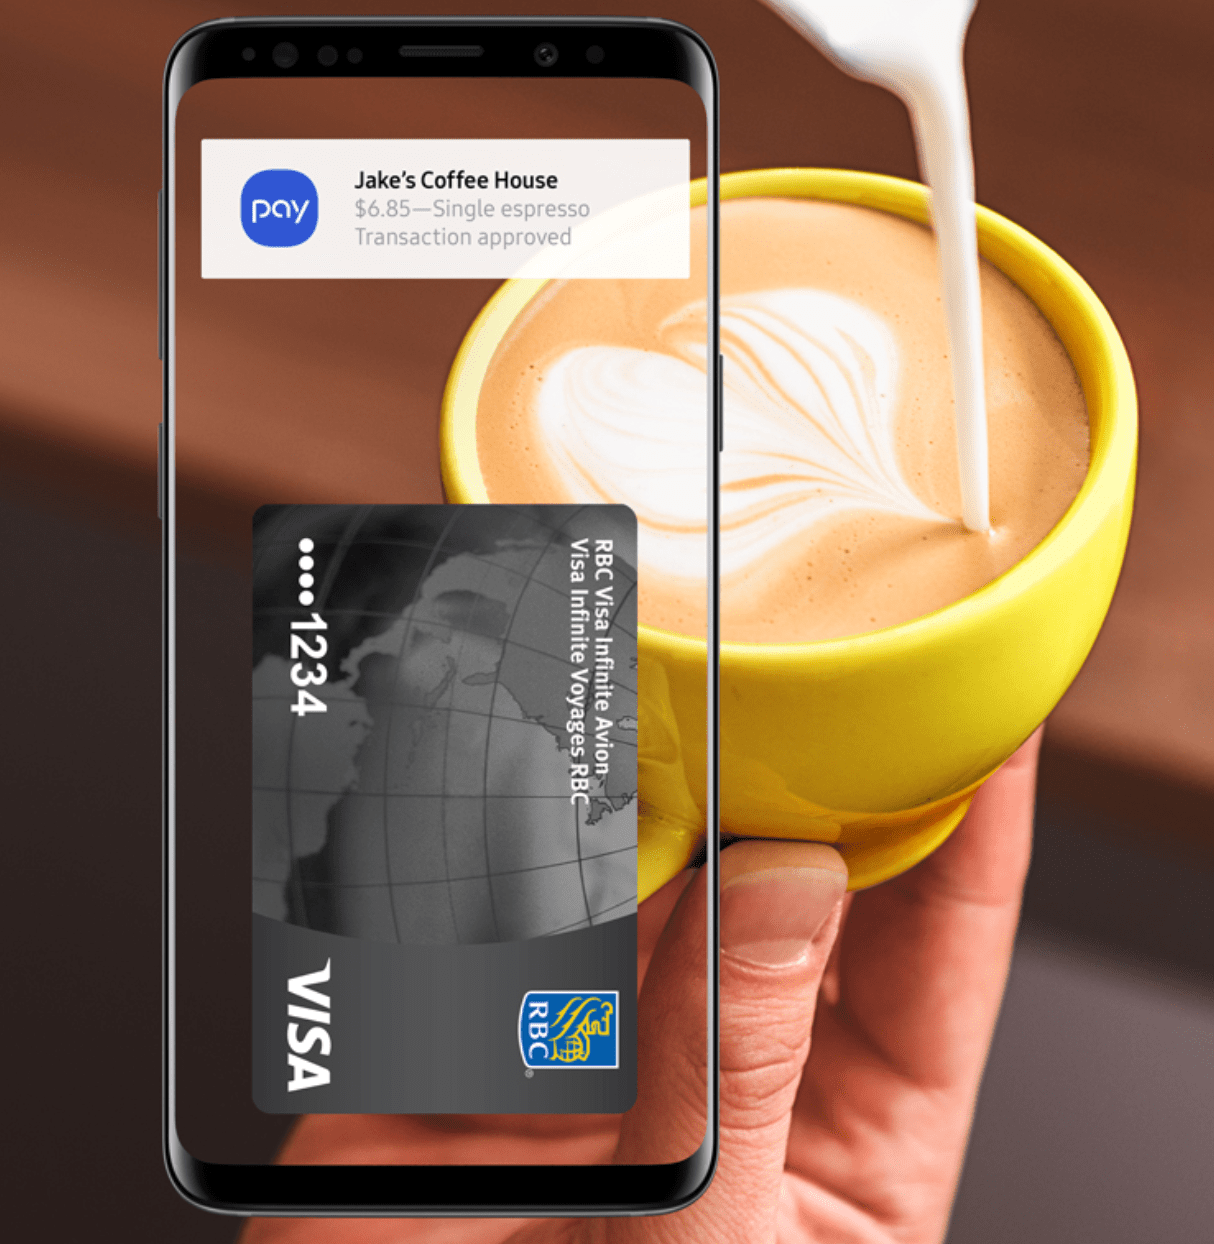 Samsung Canada Offer: FREE $15 Amazon Gift Card When You Add